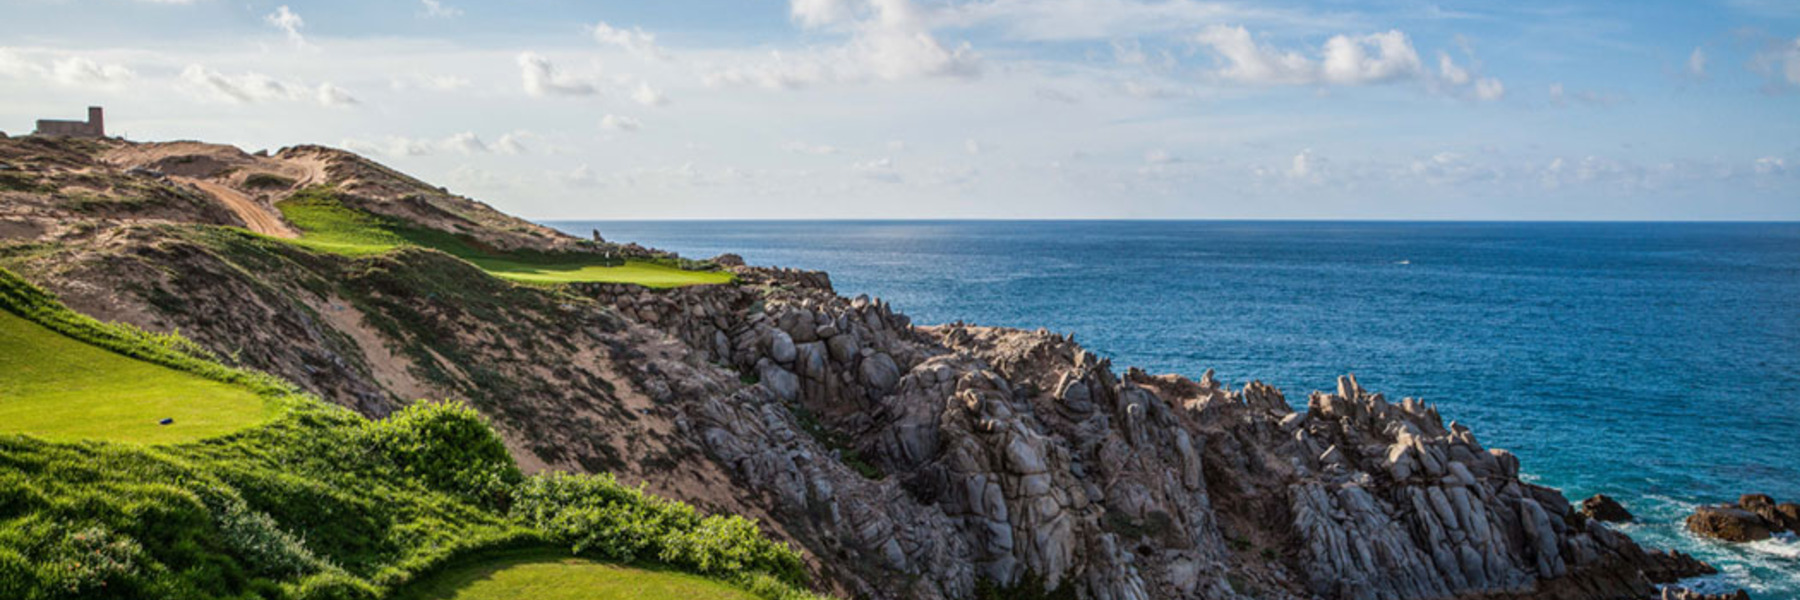 Los Cabos Golf Package Deals Save Up To 40